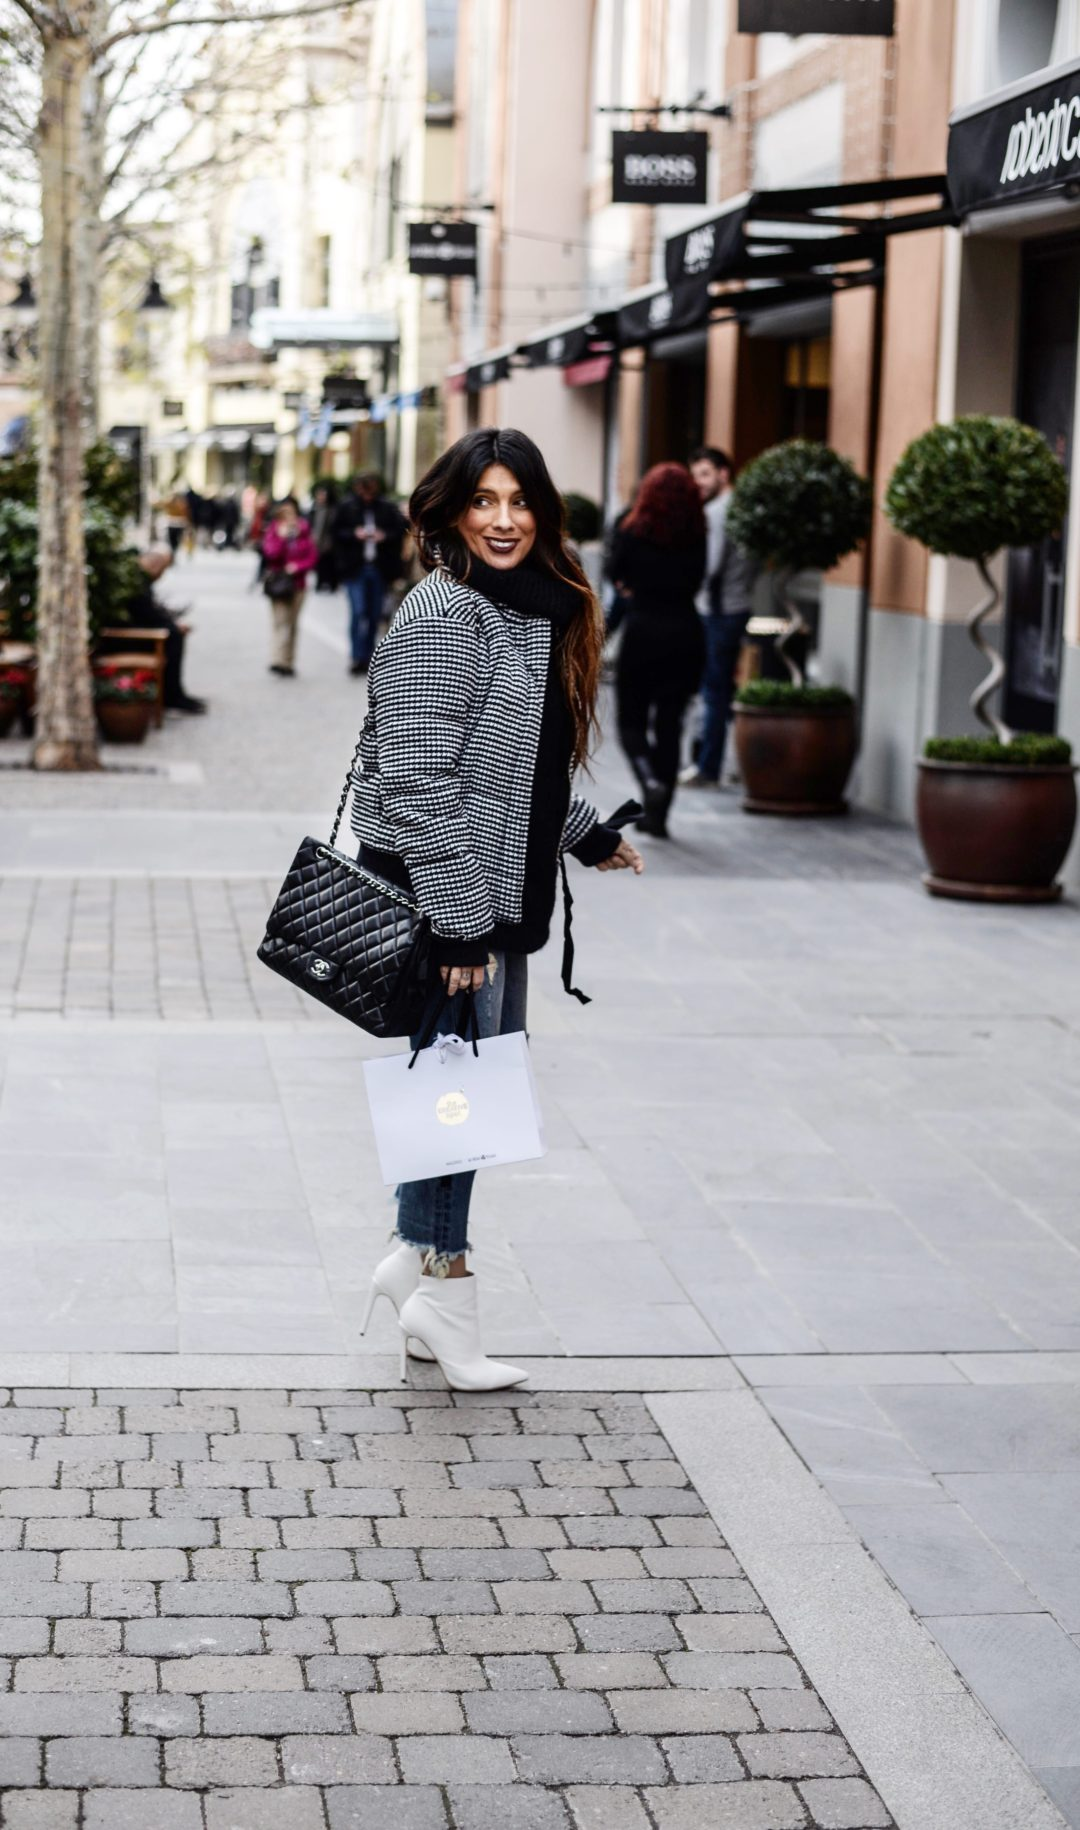 dorisknowsfashion blog mode las rozas village